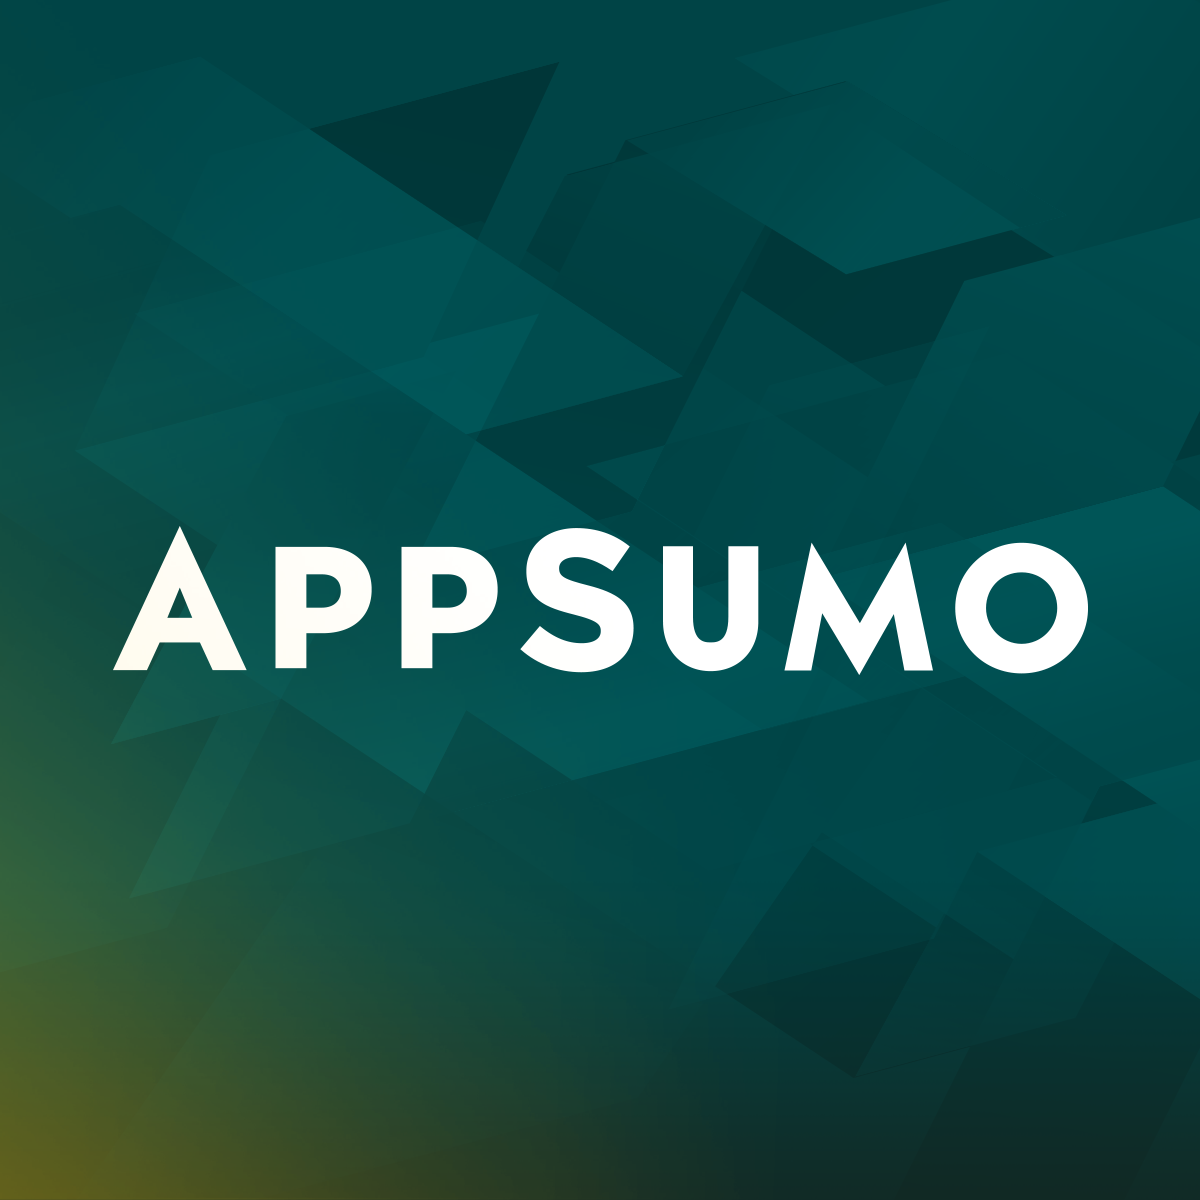 AppSumo | Learn How to Make Money Online Fast